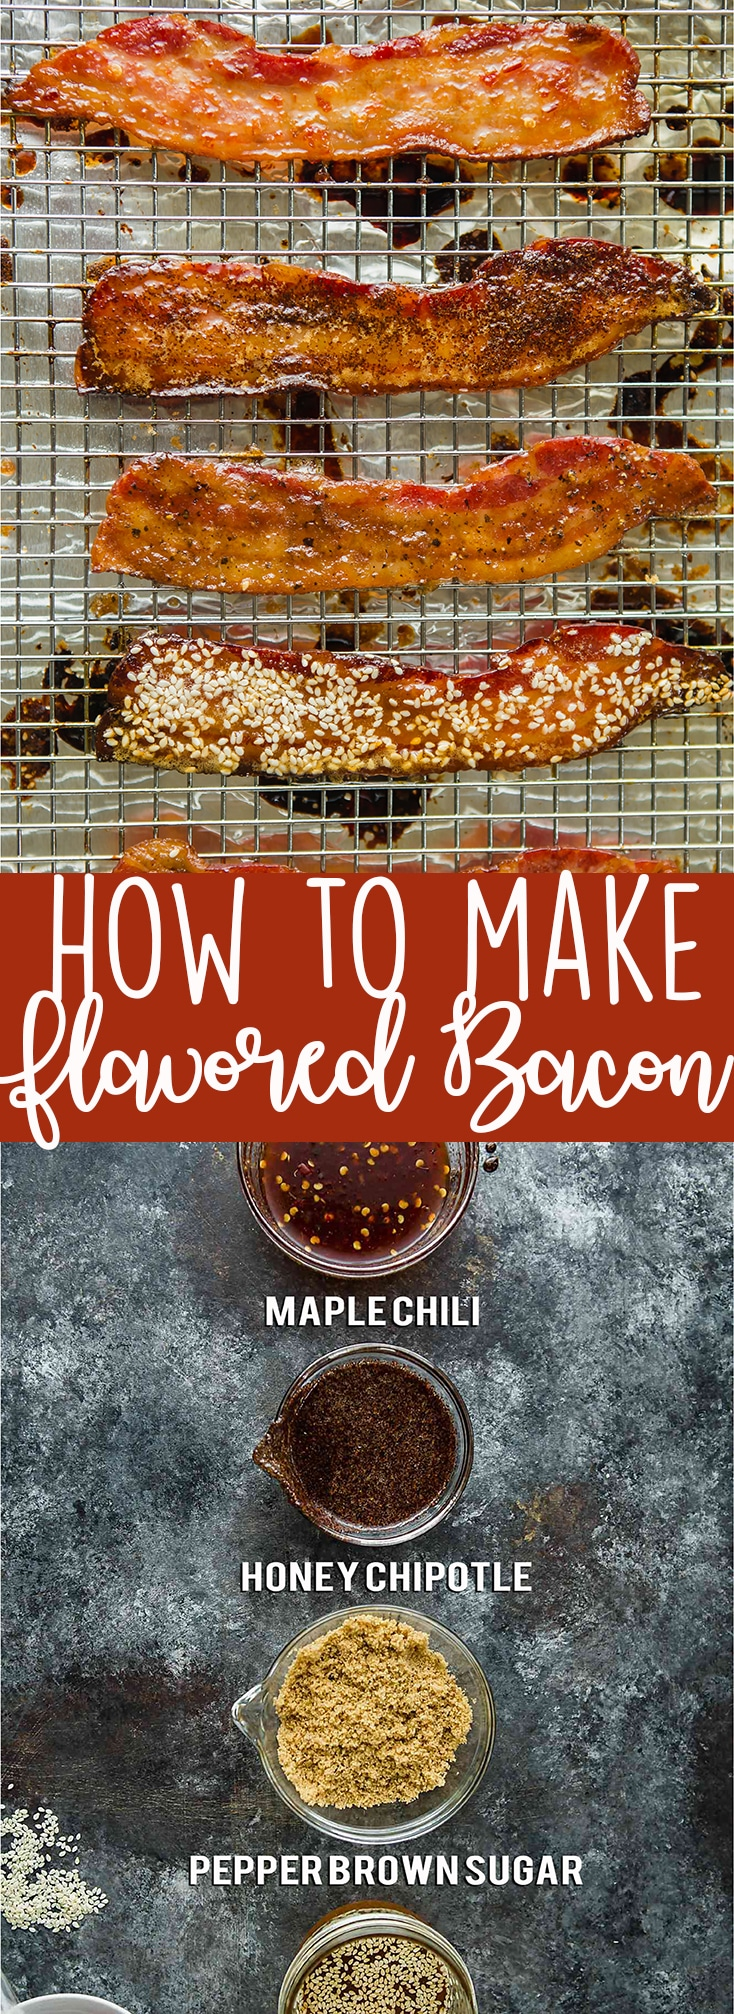 How to make the best bacon | How to bake bacon in the oven | This cut bacon | brown sugar bacon | Maple Bacon | How to make perfect bacon | Bacon for a crowd | easy bacon | Candied Bacon | Bacon recipe | No Mess Bacon | how to bake bacon at 350